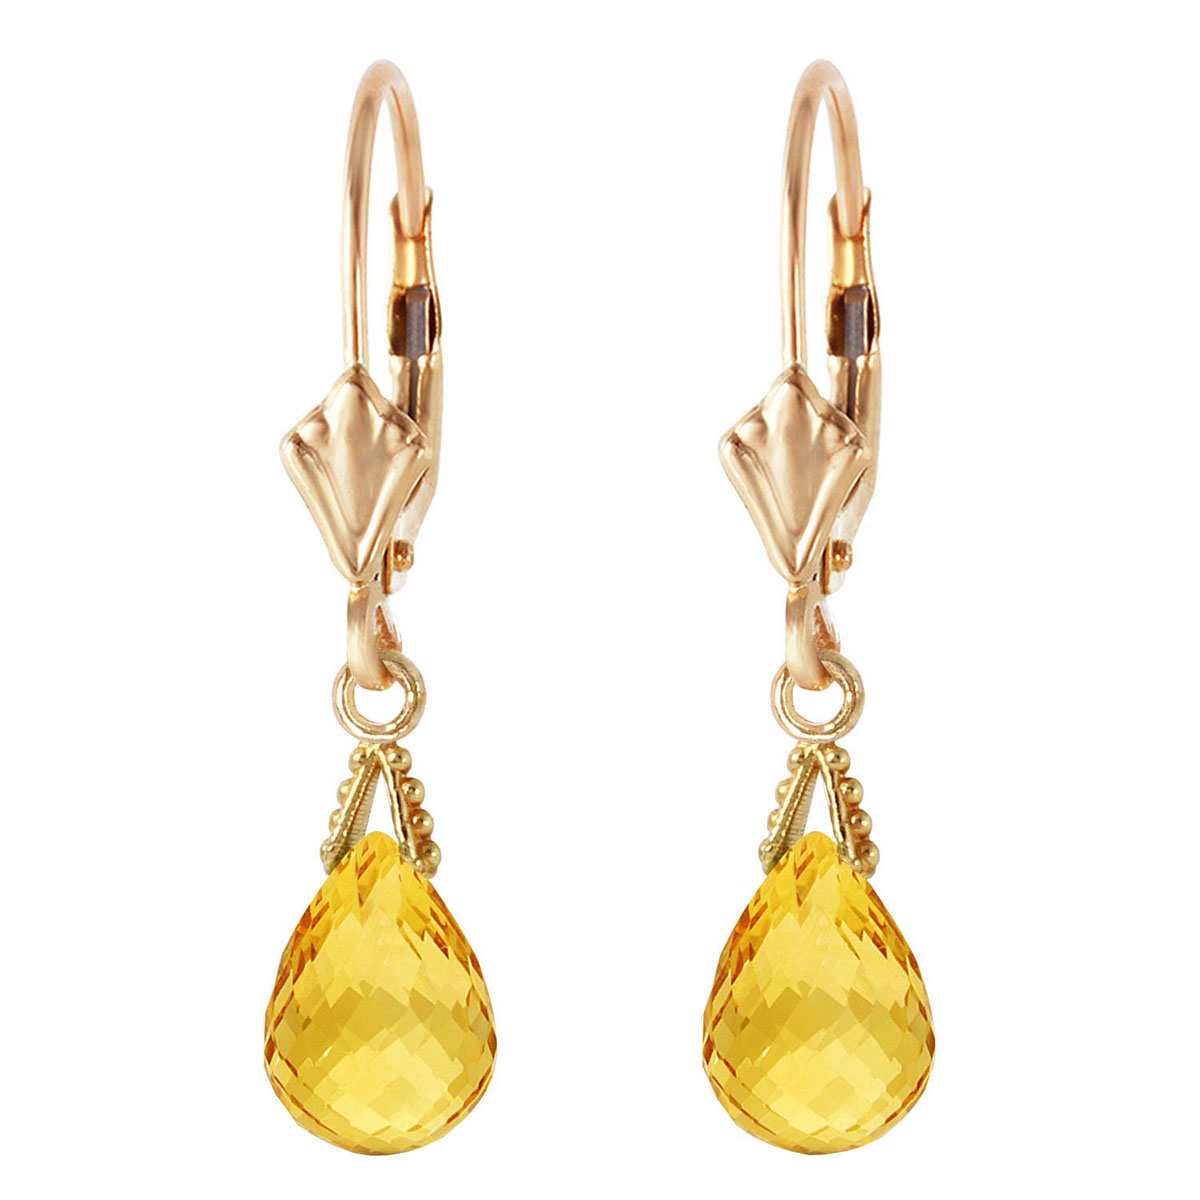 Citrine Droplet Earrings 2.5 ctw in 9ct Gold